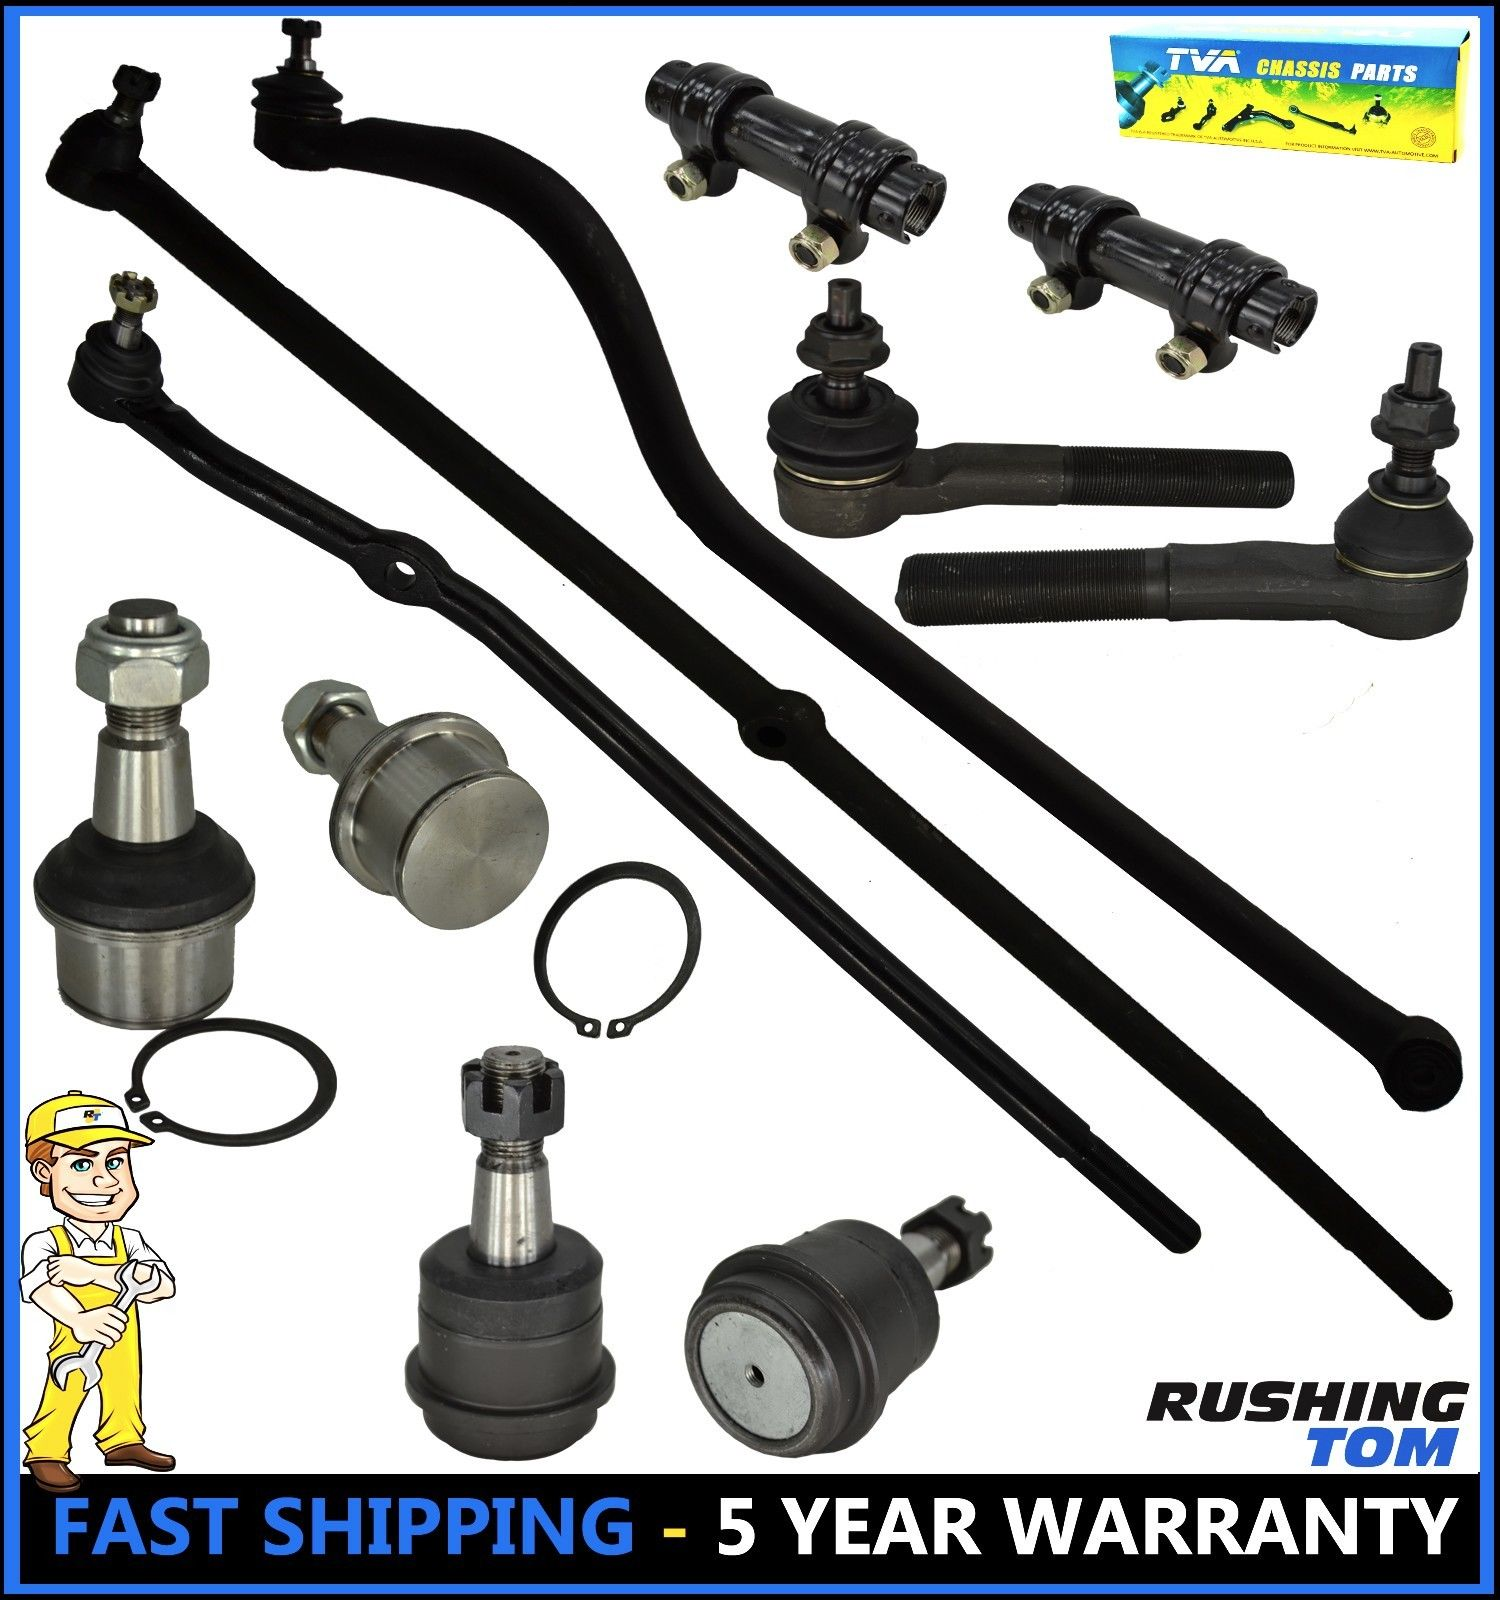 11 Pc Complete Suspension Kit Tie Rod Ends Ball Joint Dodge Ram 2500 3500 4x4